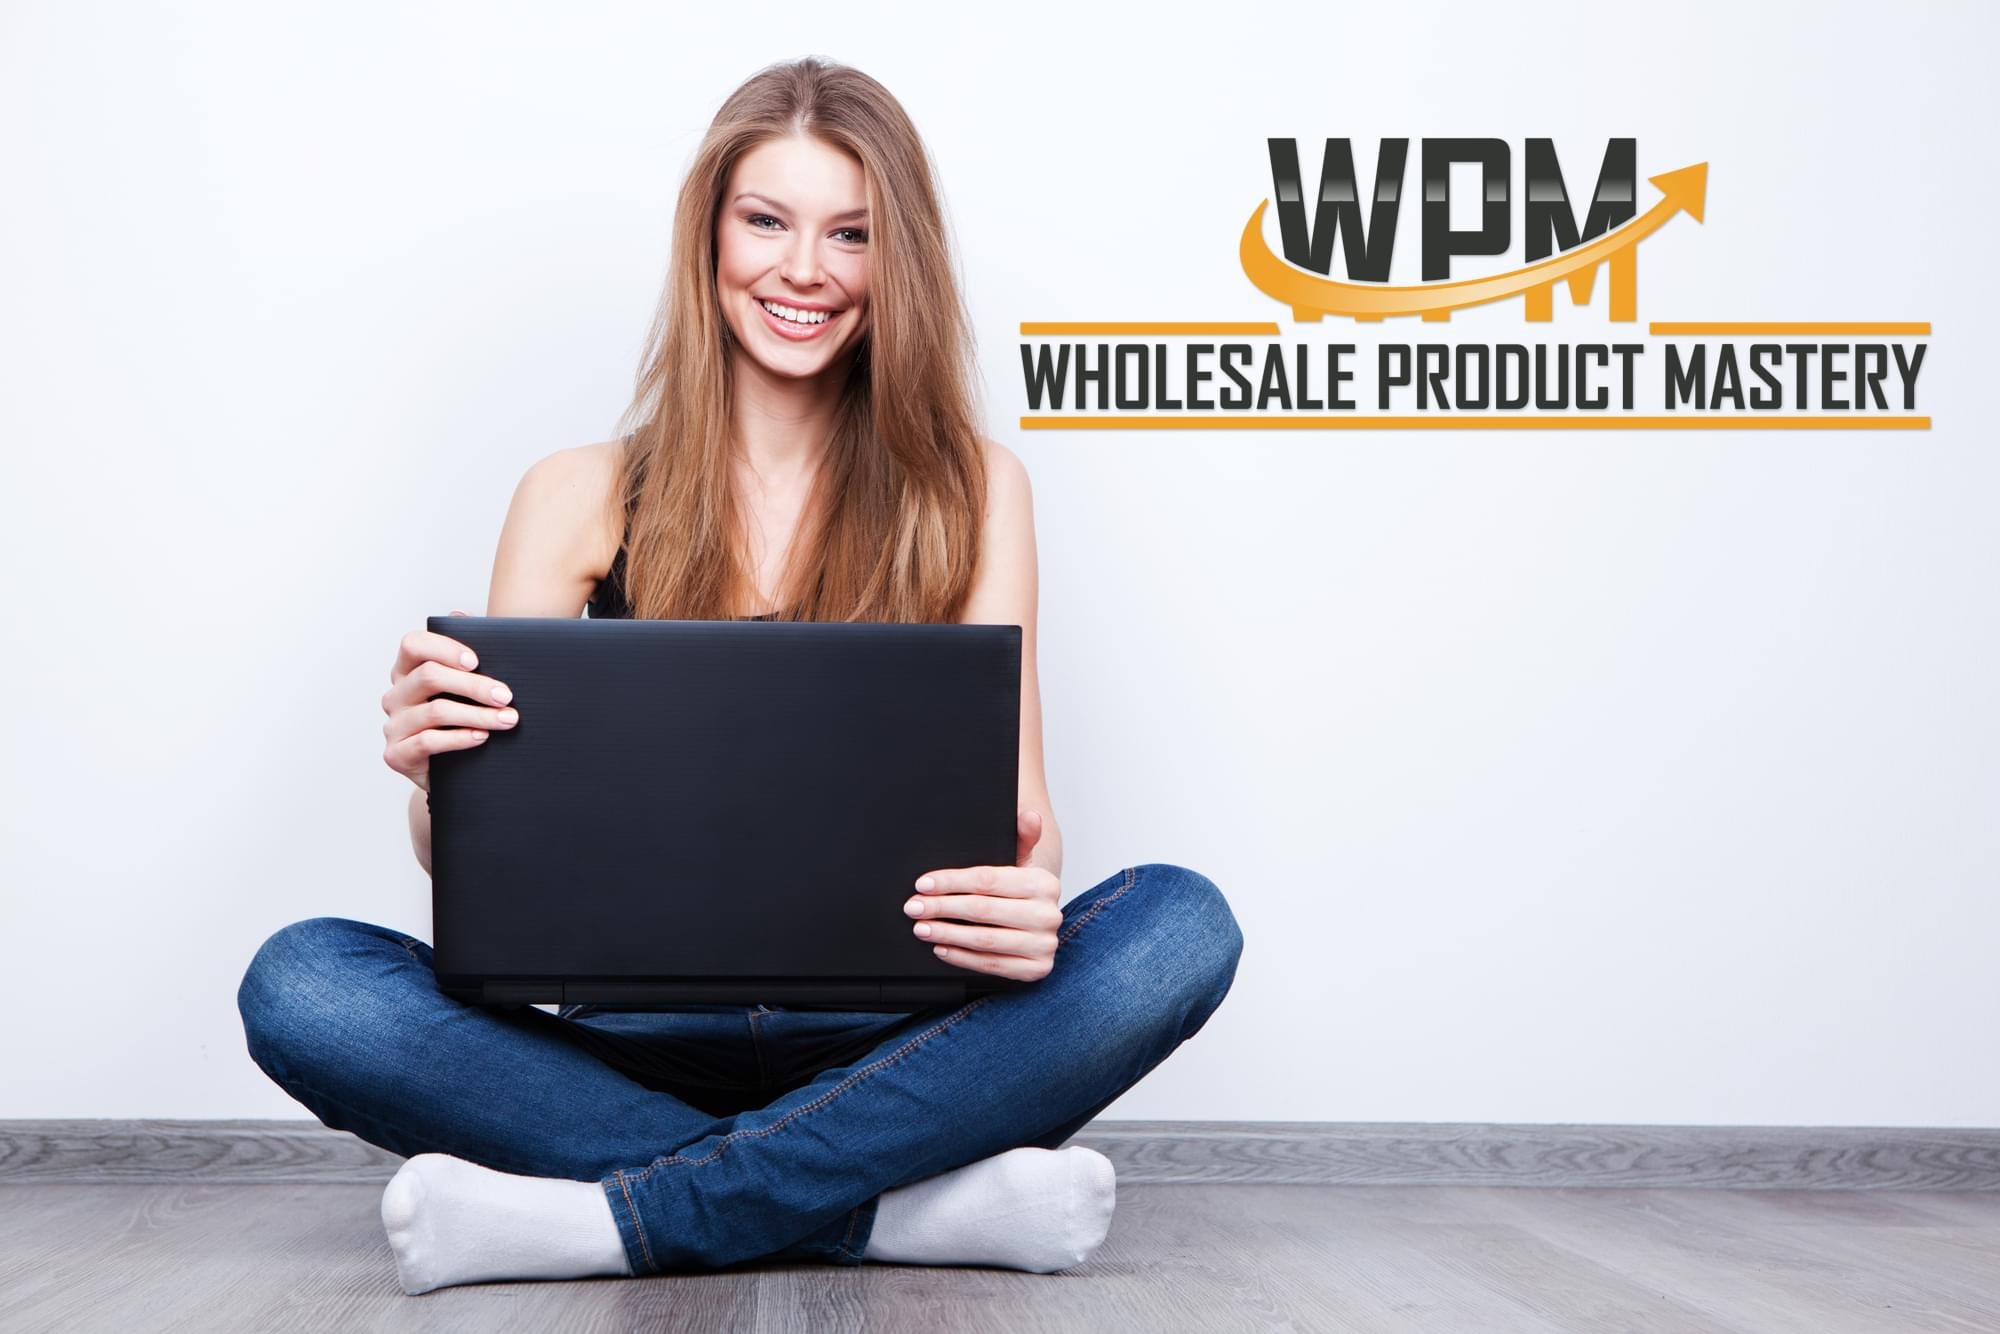 Wholesale Product Mastery